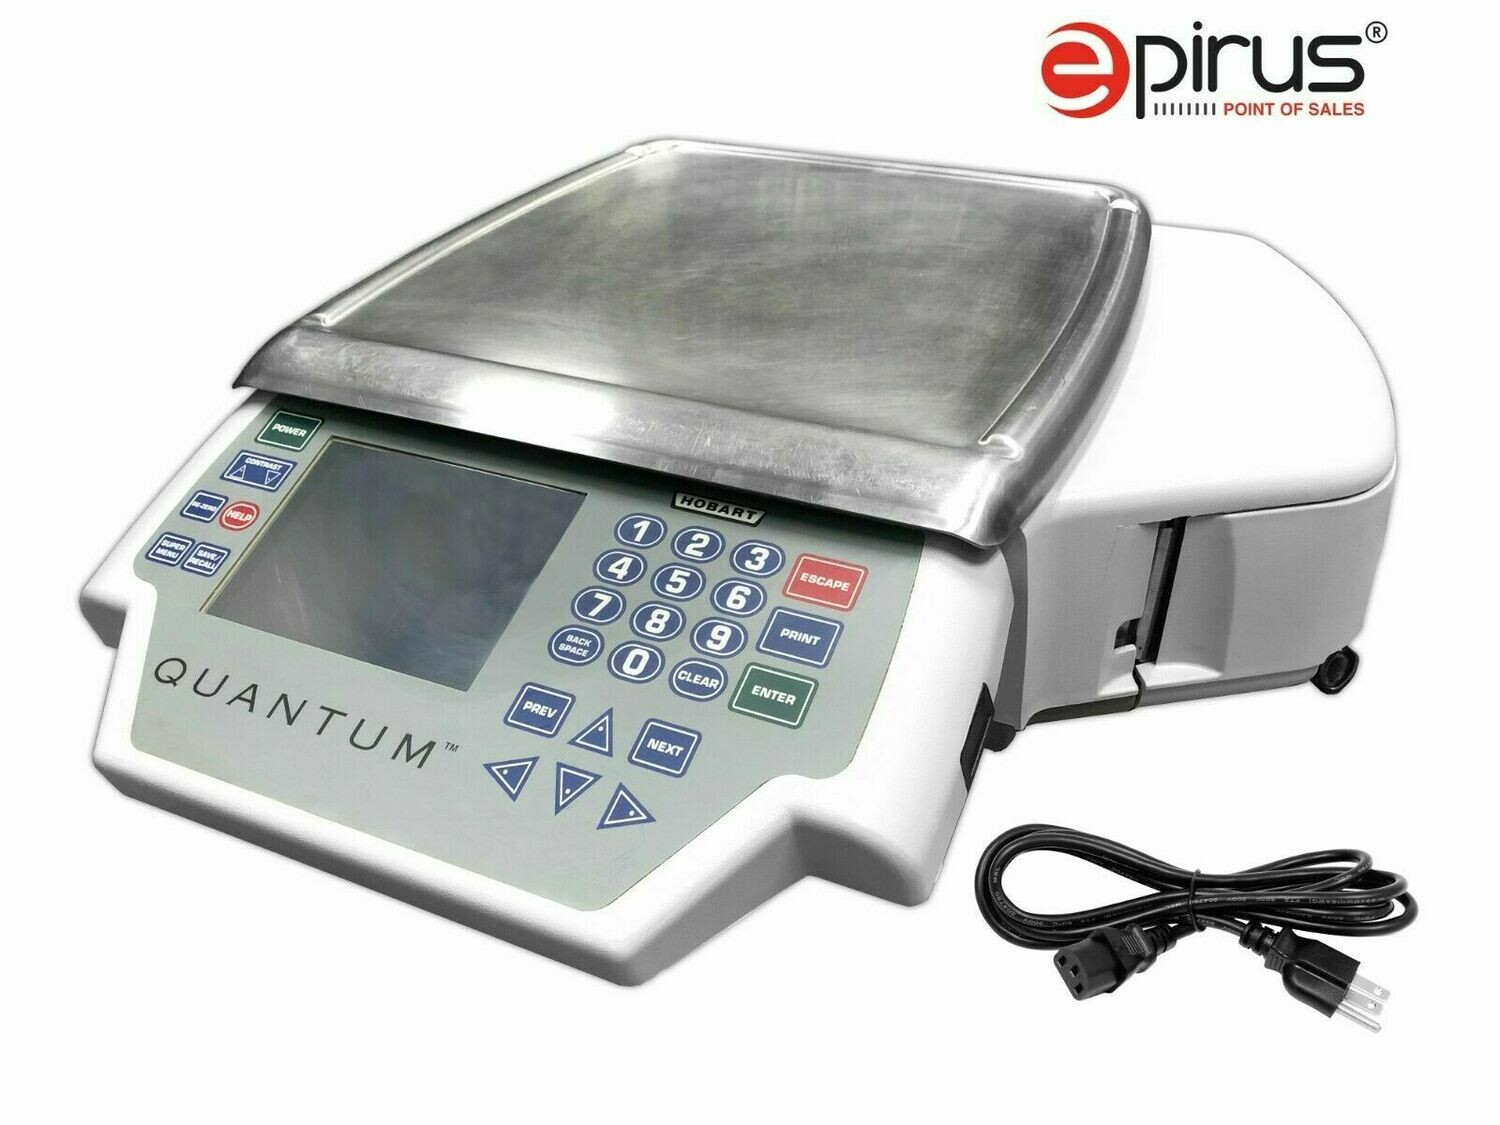 Hobart Quantum 29252-BJ  Deli Scale Printer Display (Grade A Refurb)